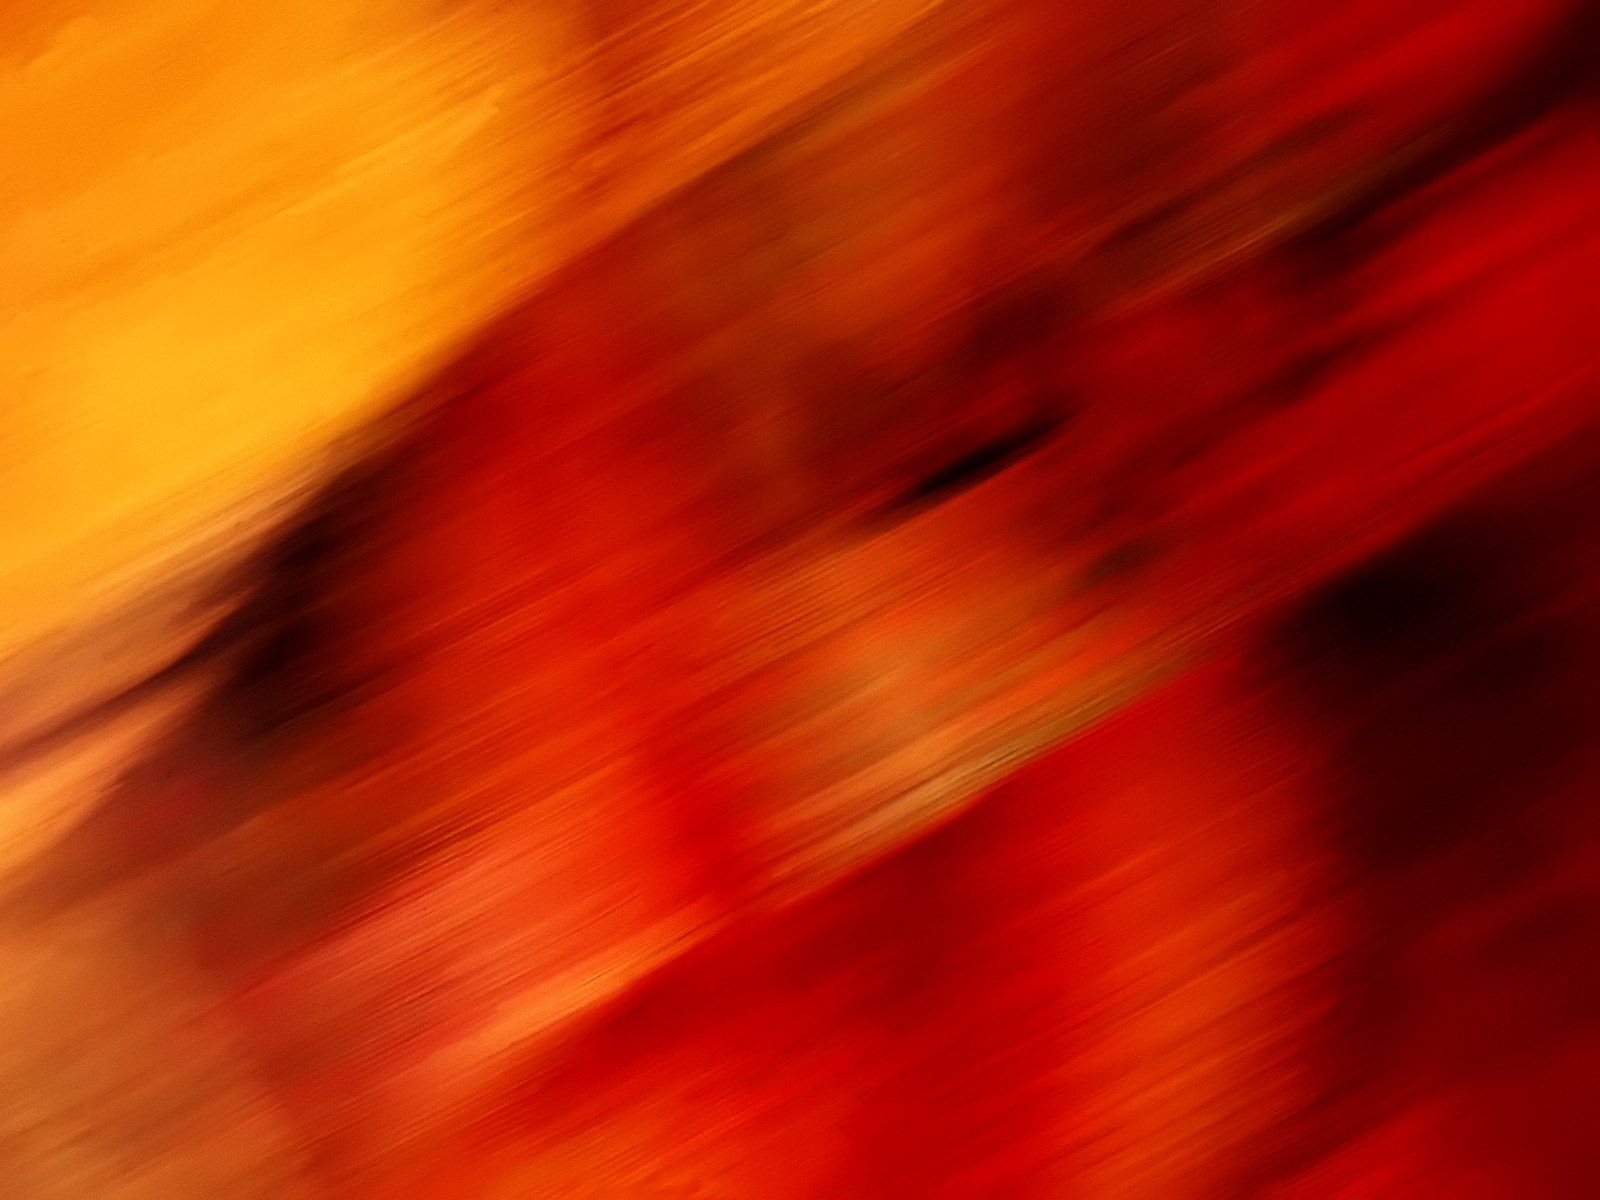 orange red blur wallpaper rap and change farming and future 1600x1200